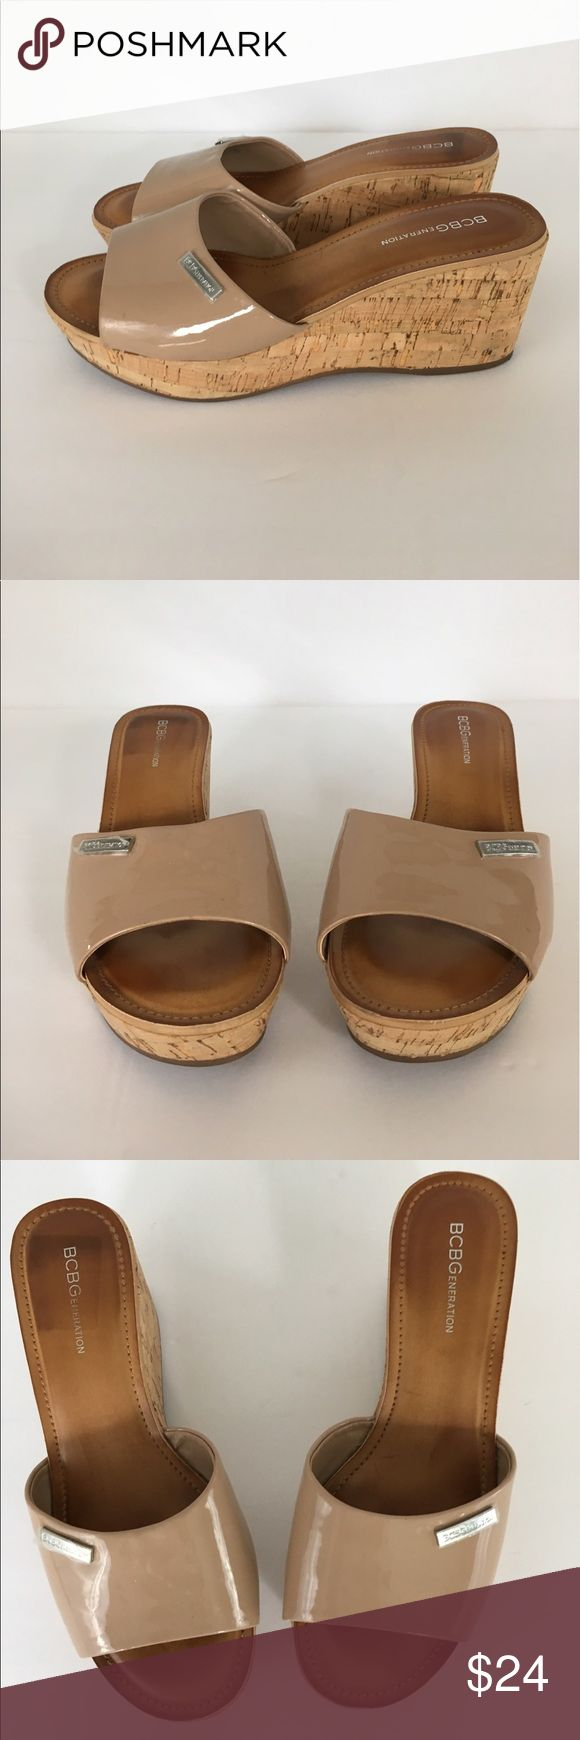 """BCBGeneration SZ 7.5 Tan Patent Leather Cork Wedge BCBGeneration SZ 7.5 Tan Patent Leather Cork Wedge. Excellent condition - only worn once!  Measurements:  Heel to Toe:  9.5"""" 2"""" at arch. Wedge: 3"""". This would match so many summer looks! Shoes Wedges"""